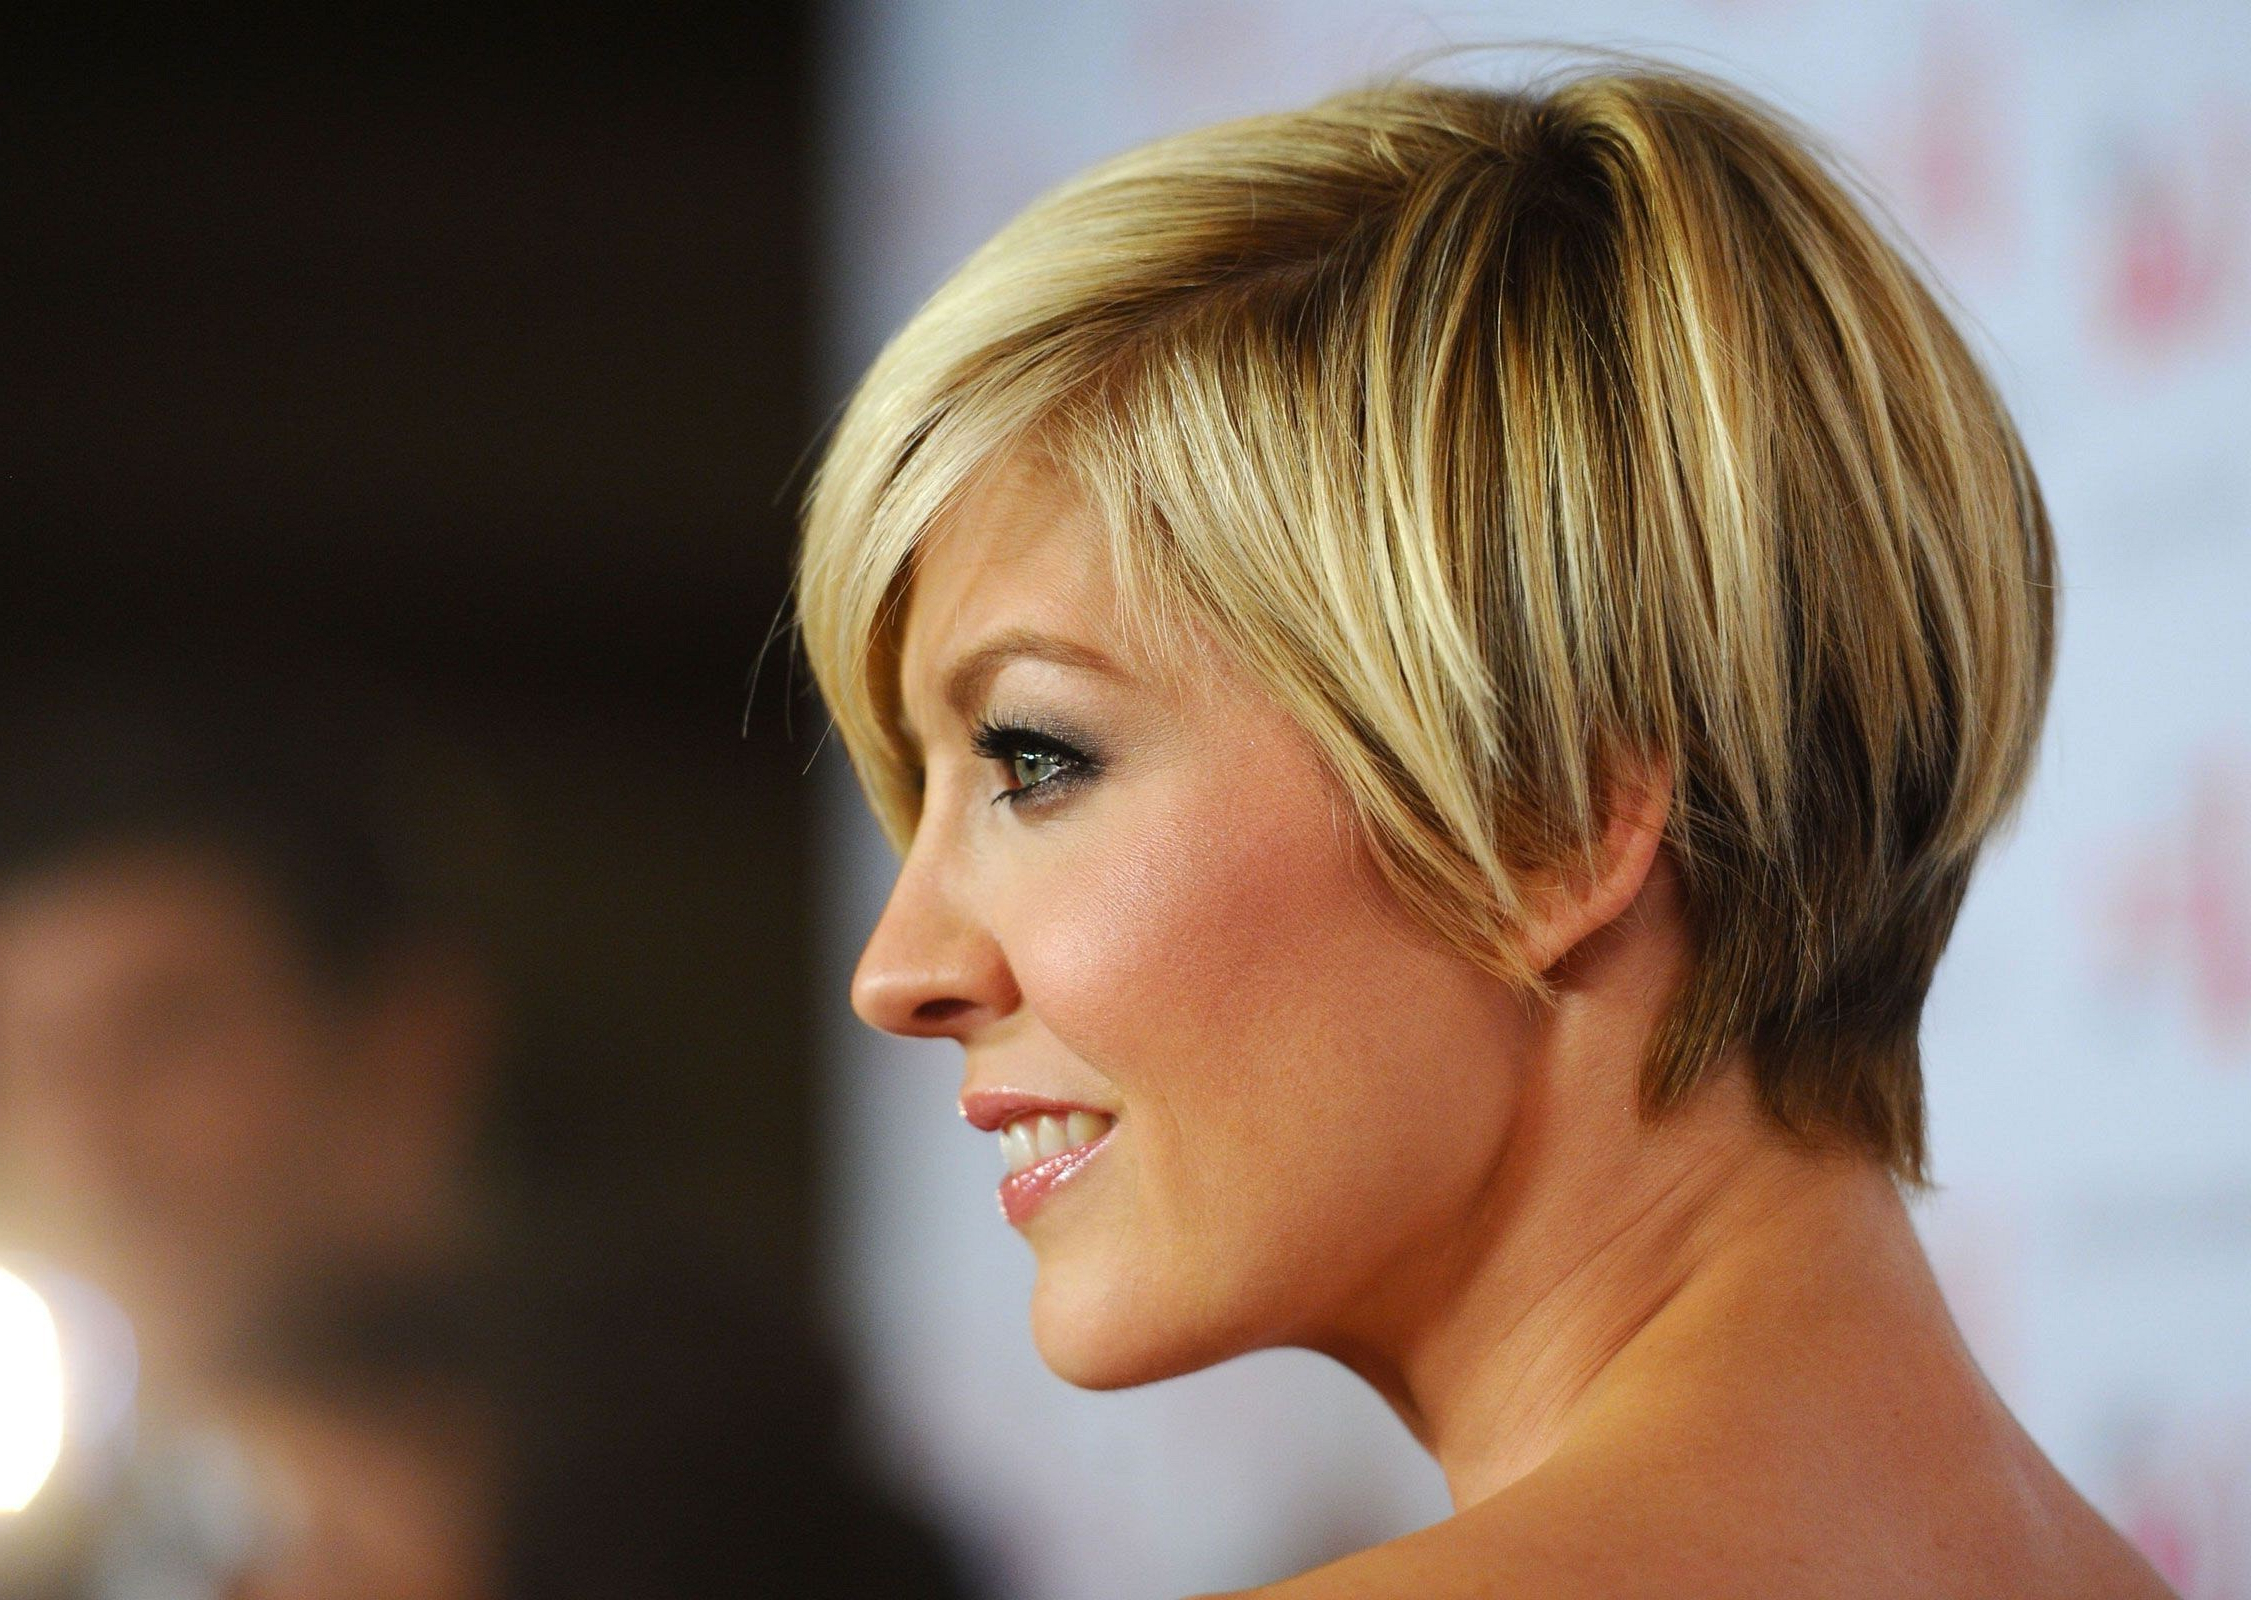 Latest Short Hairstyles For Women Over 40 Within Short Hairstyles For Over 40 Year Old Woman (View 5 of 25)